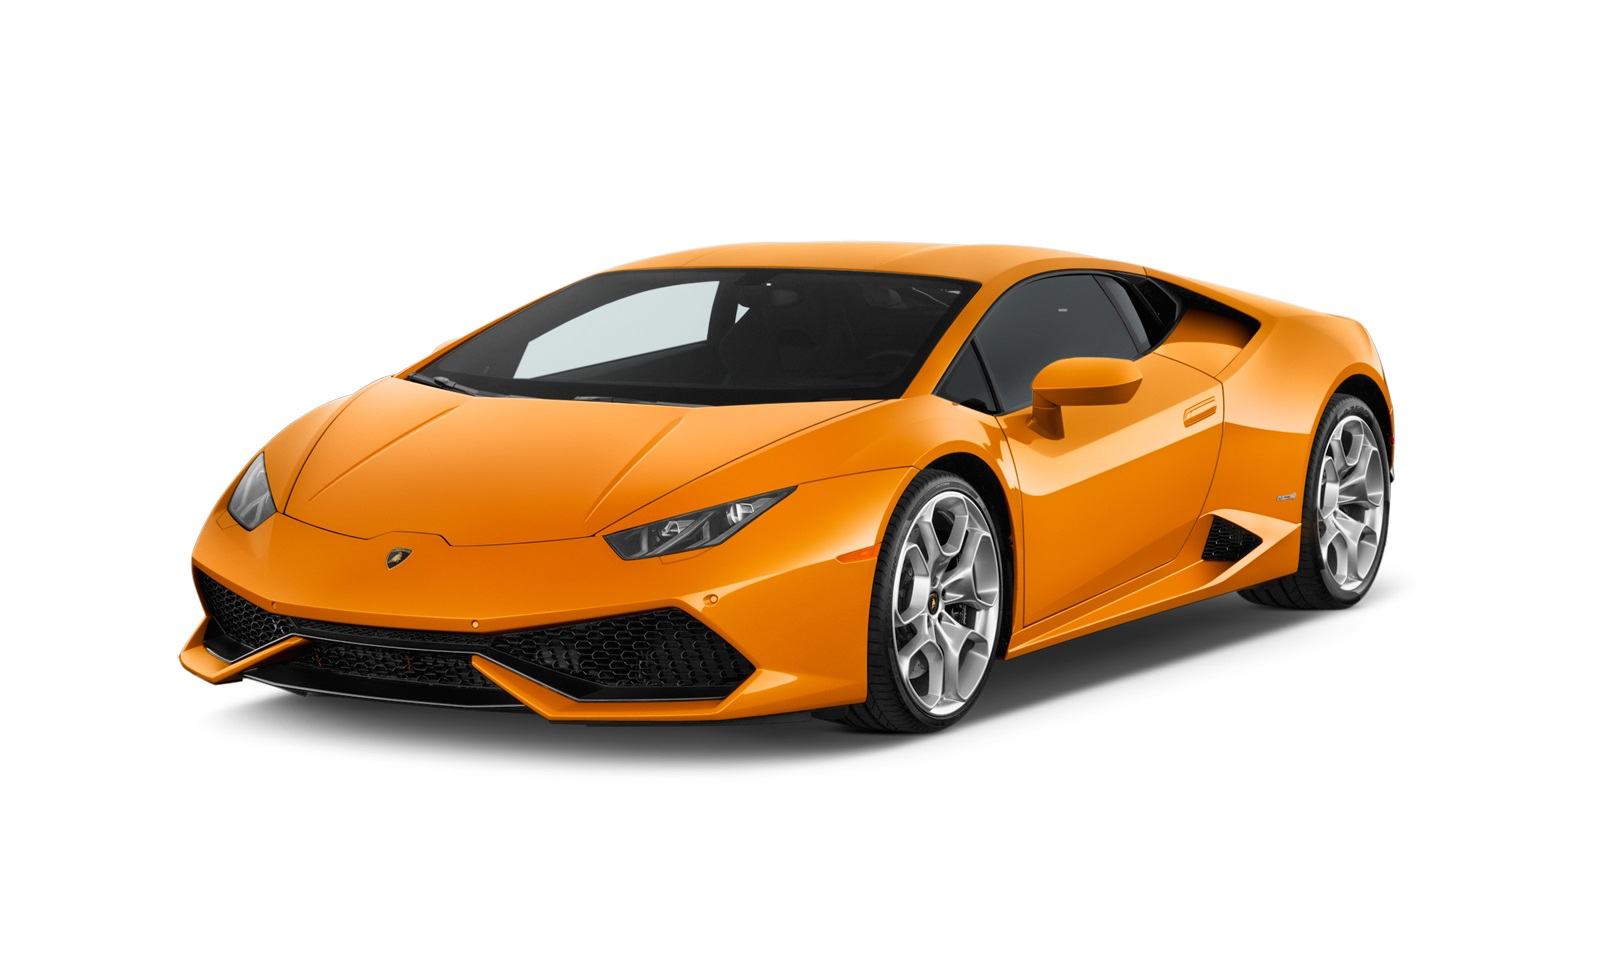 Lamborghini Qatar - 2018 Lamborghini Models, Prices and Photos ...